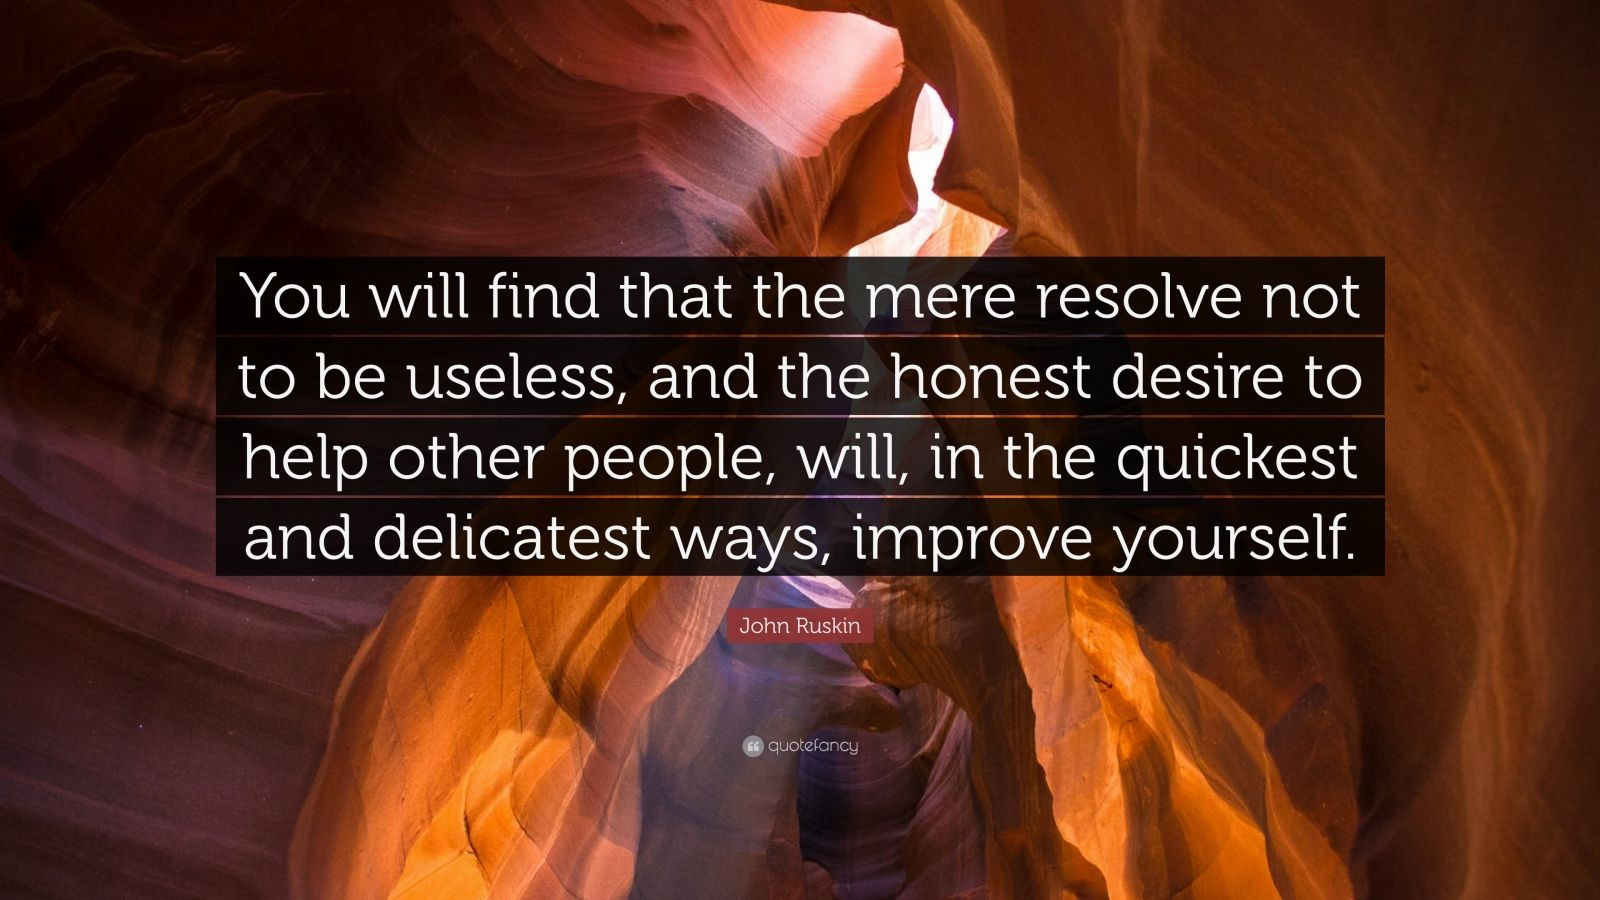 """John Ruskin Quote: """"You will find that the mere resolve not to be useless, and the honest desire to help other people, will, in the quickest and delicatest ways, improve yourself."""""""